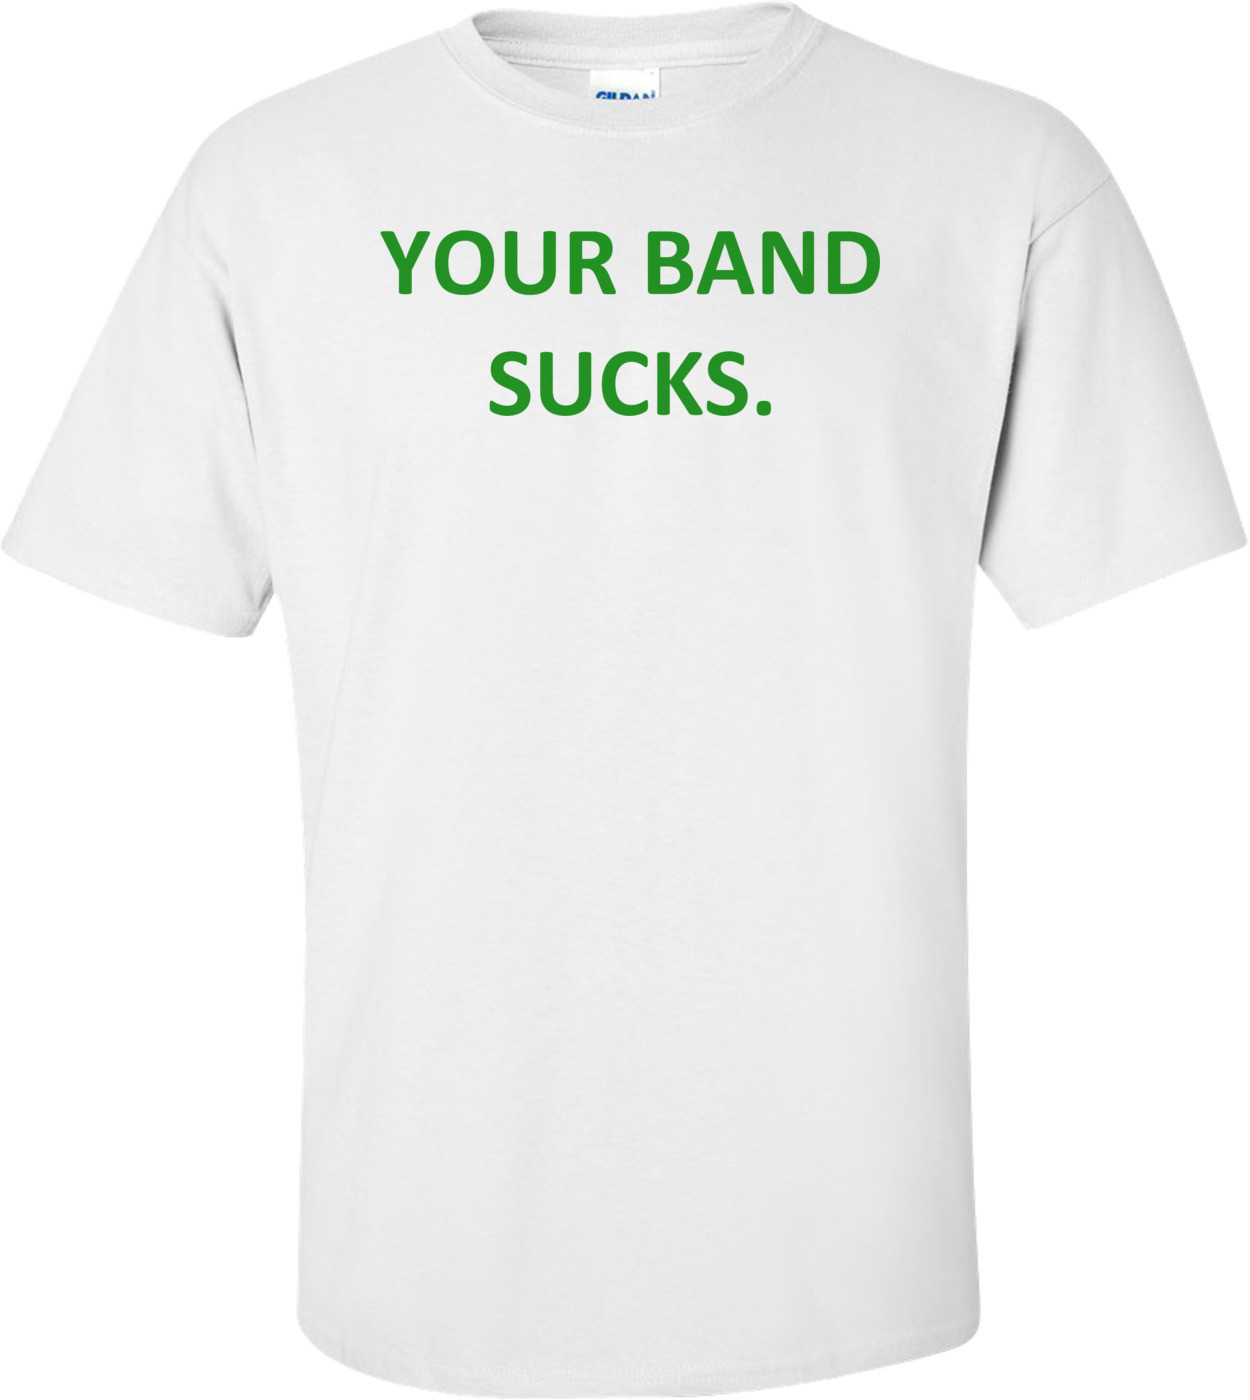 YOUR BAND SUCKS. Shirt